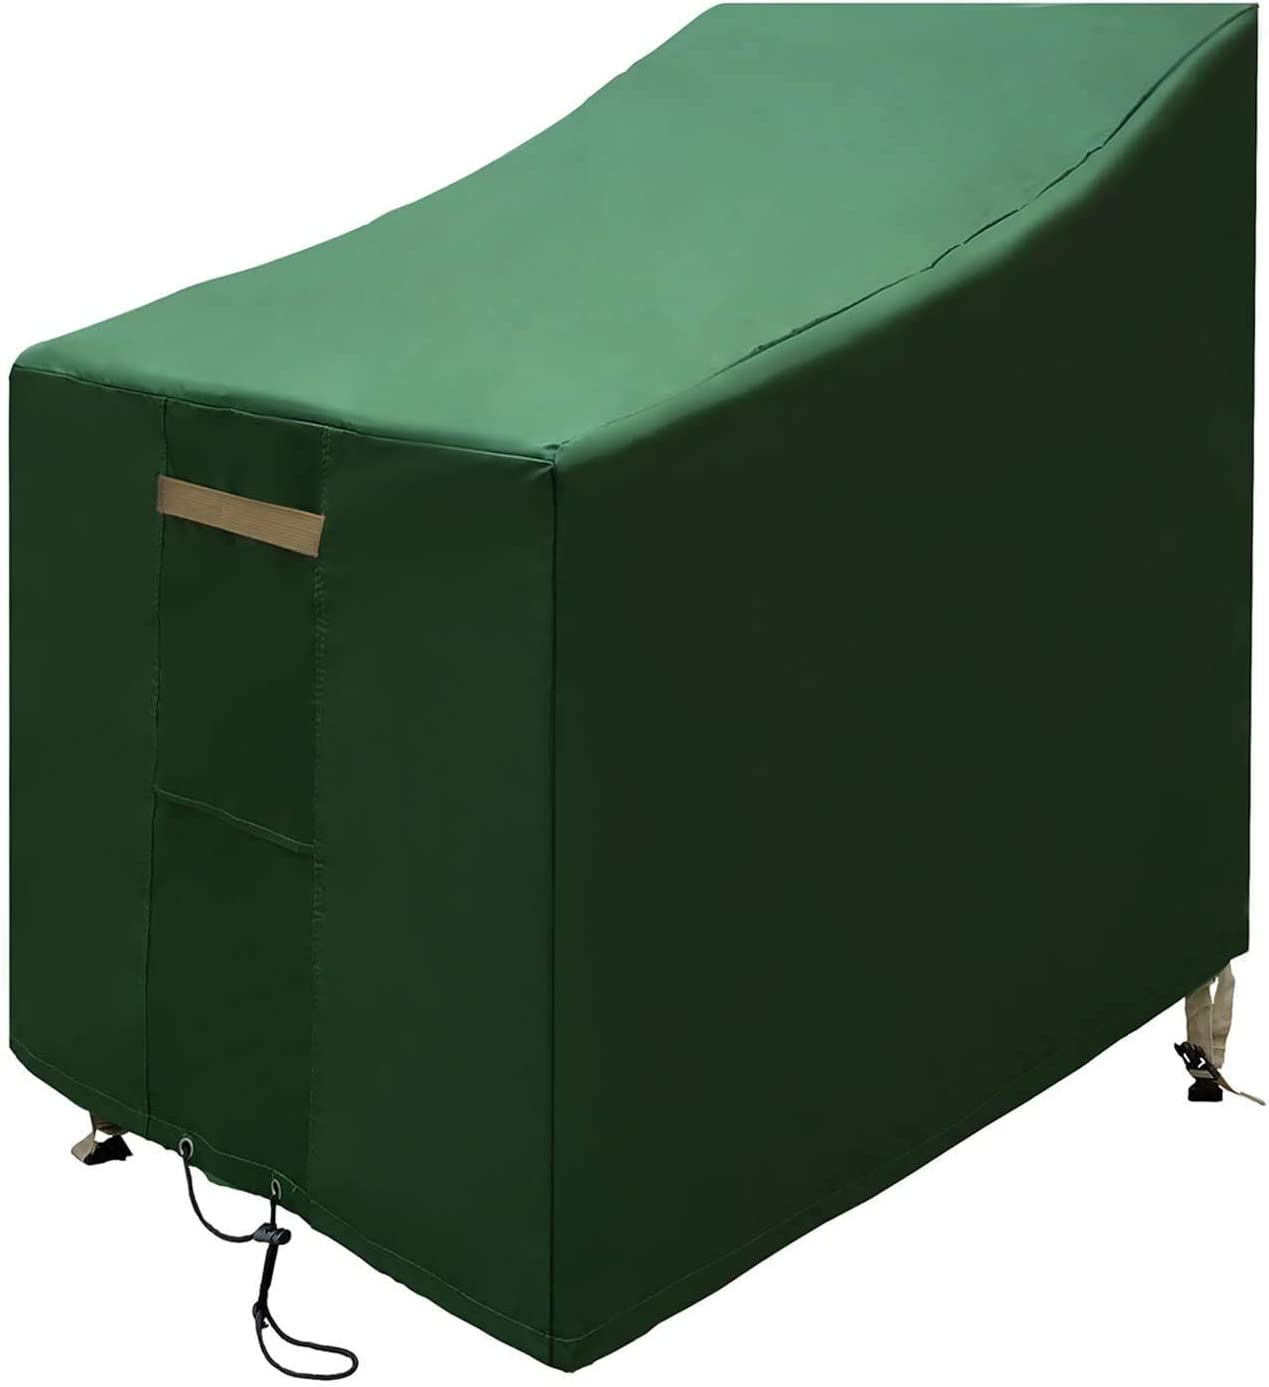 YHCGRE Patio Outdoor Chair Cover Waterproof 600D Heavy Duty Lounge Deep-Seat Patio Stacking Cover,Rip-Stop , Durable Lawn Patio Furniture Covers Garden High Back Chairs Protector 25Lx32 Dx33H IN-Green